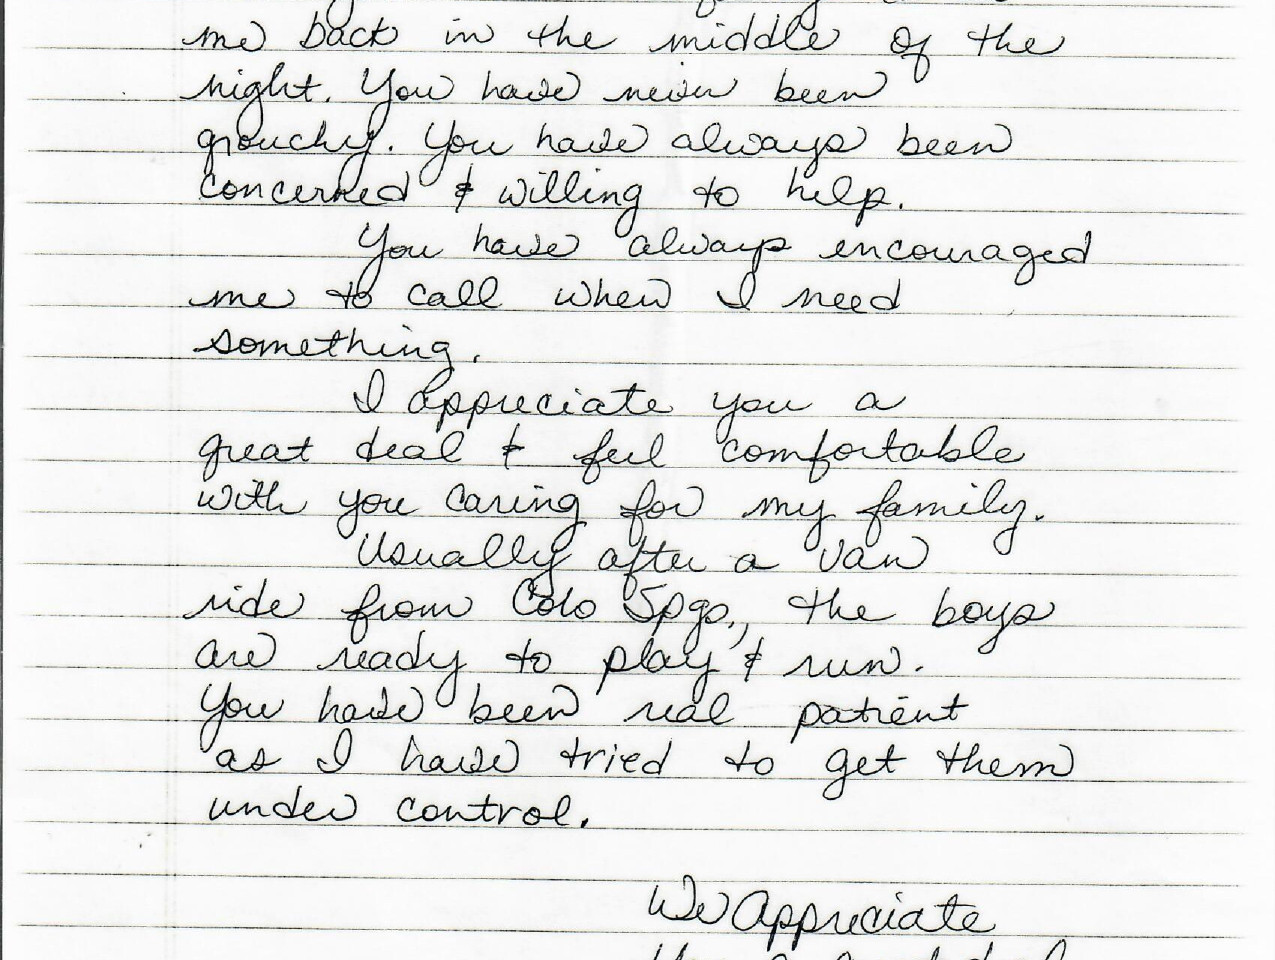 Patient thank you letters1_page-0004.jpg